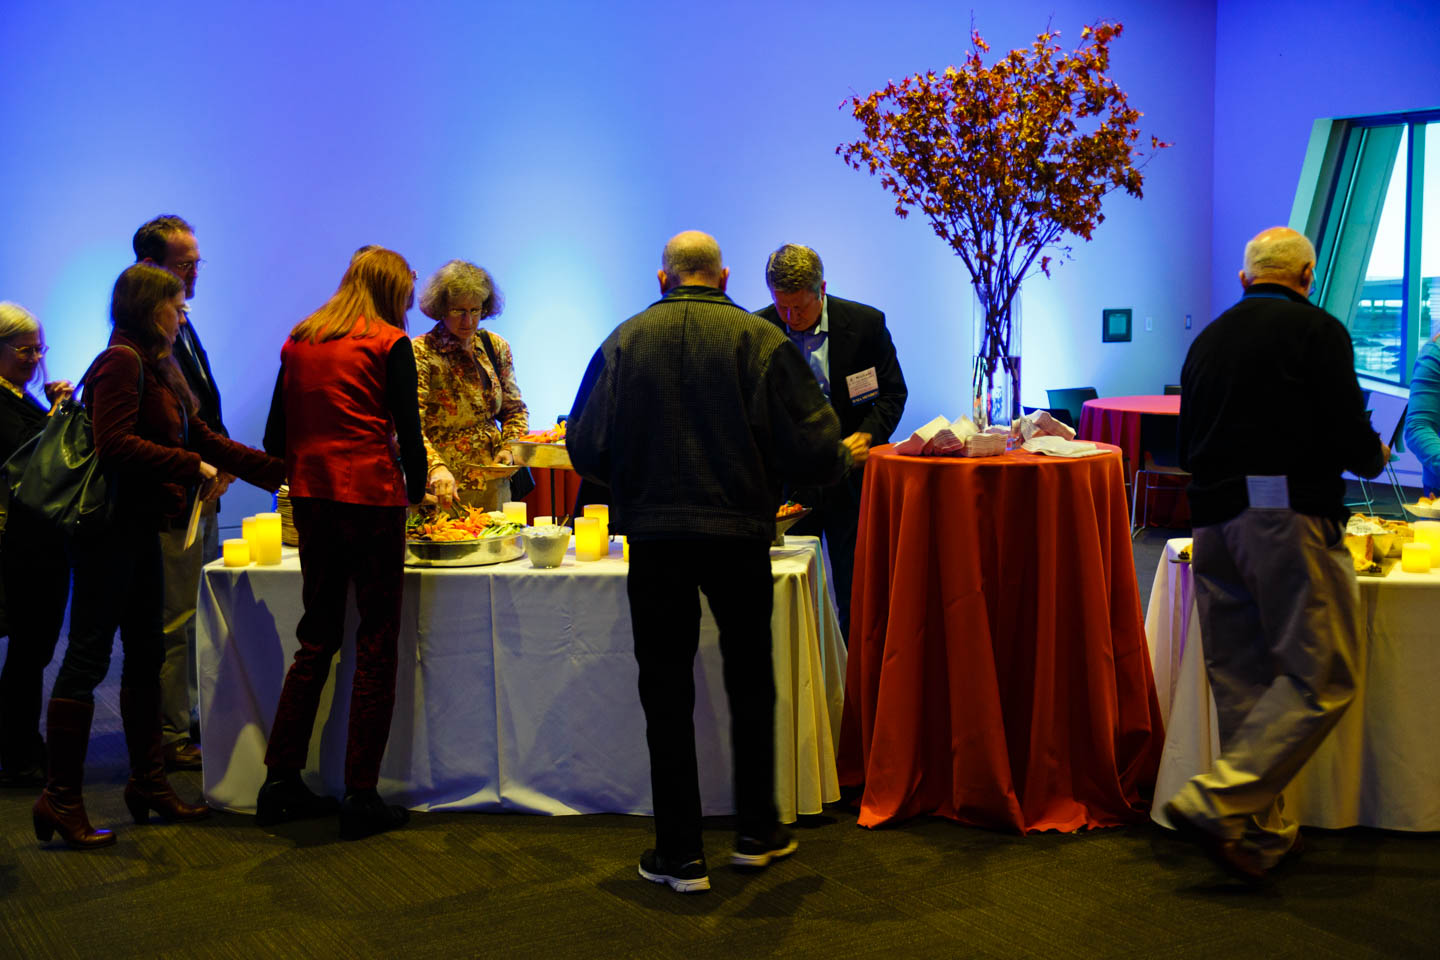 Folks enjoy the heck out of the buffet by Le Croissant Catering